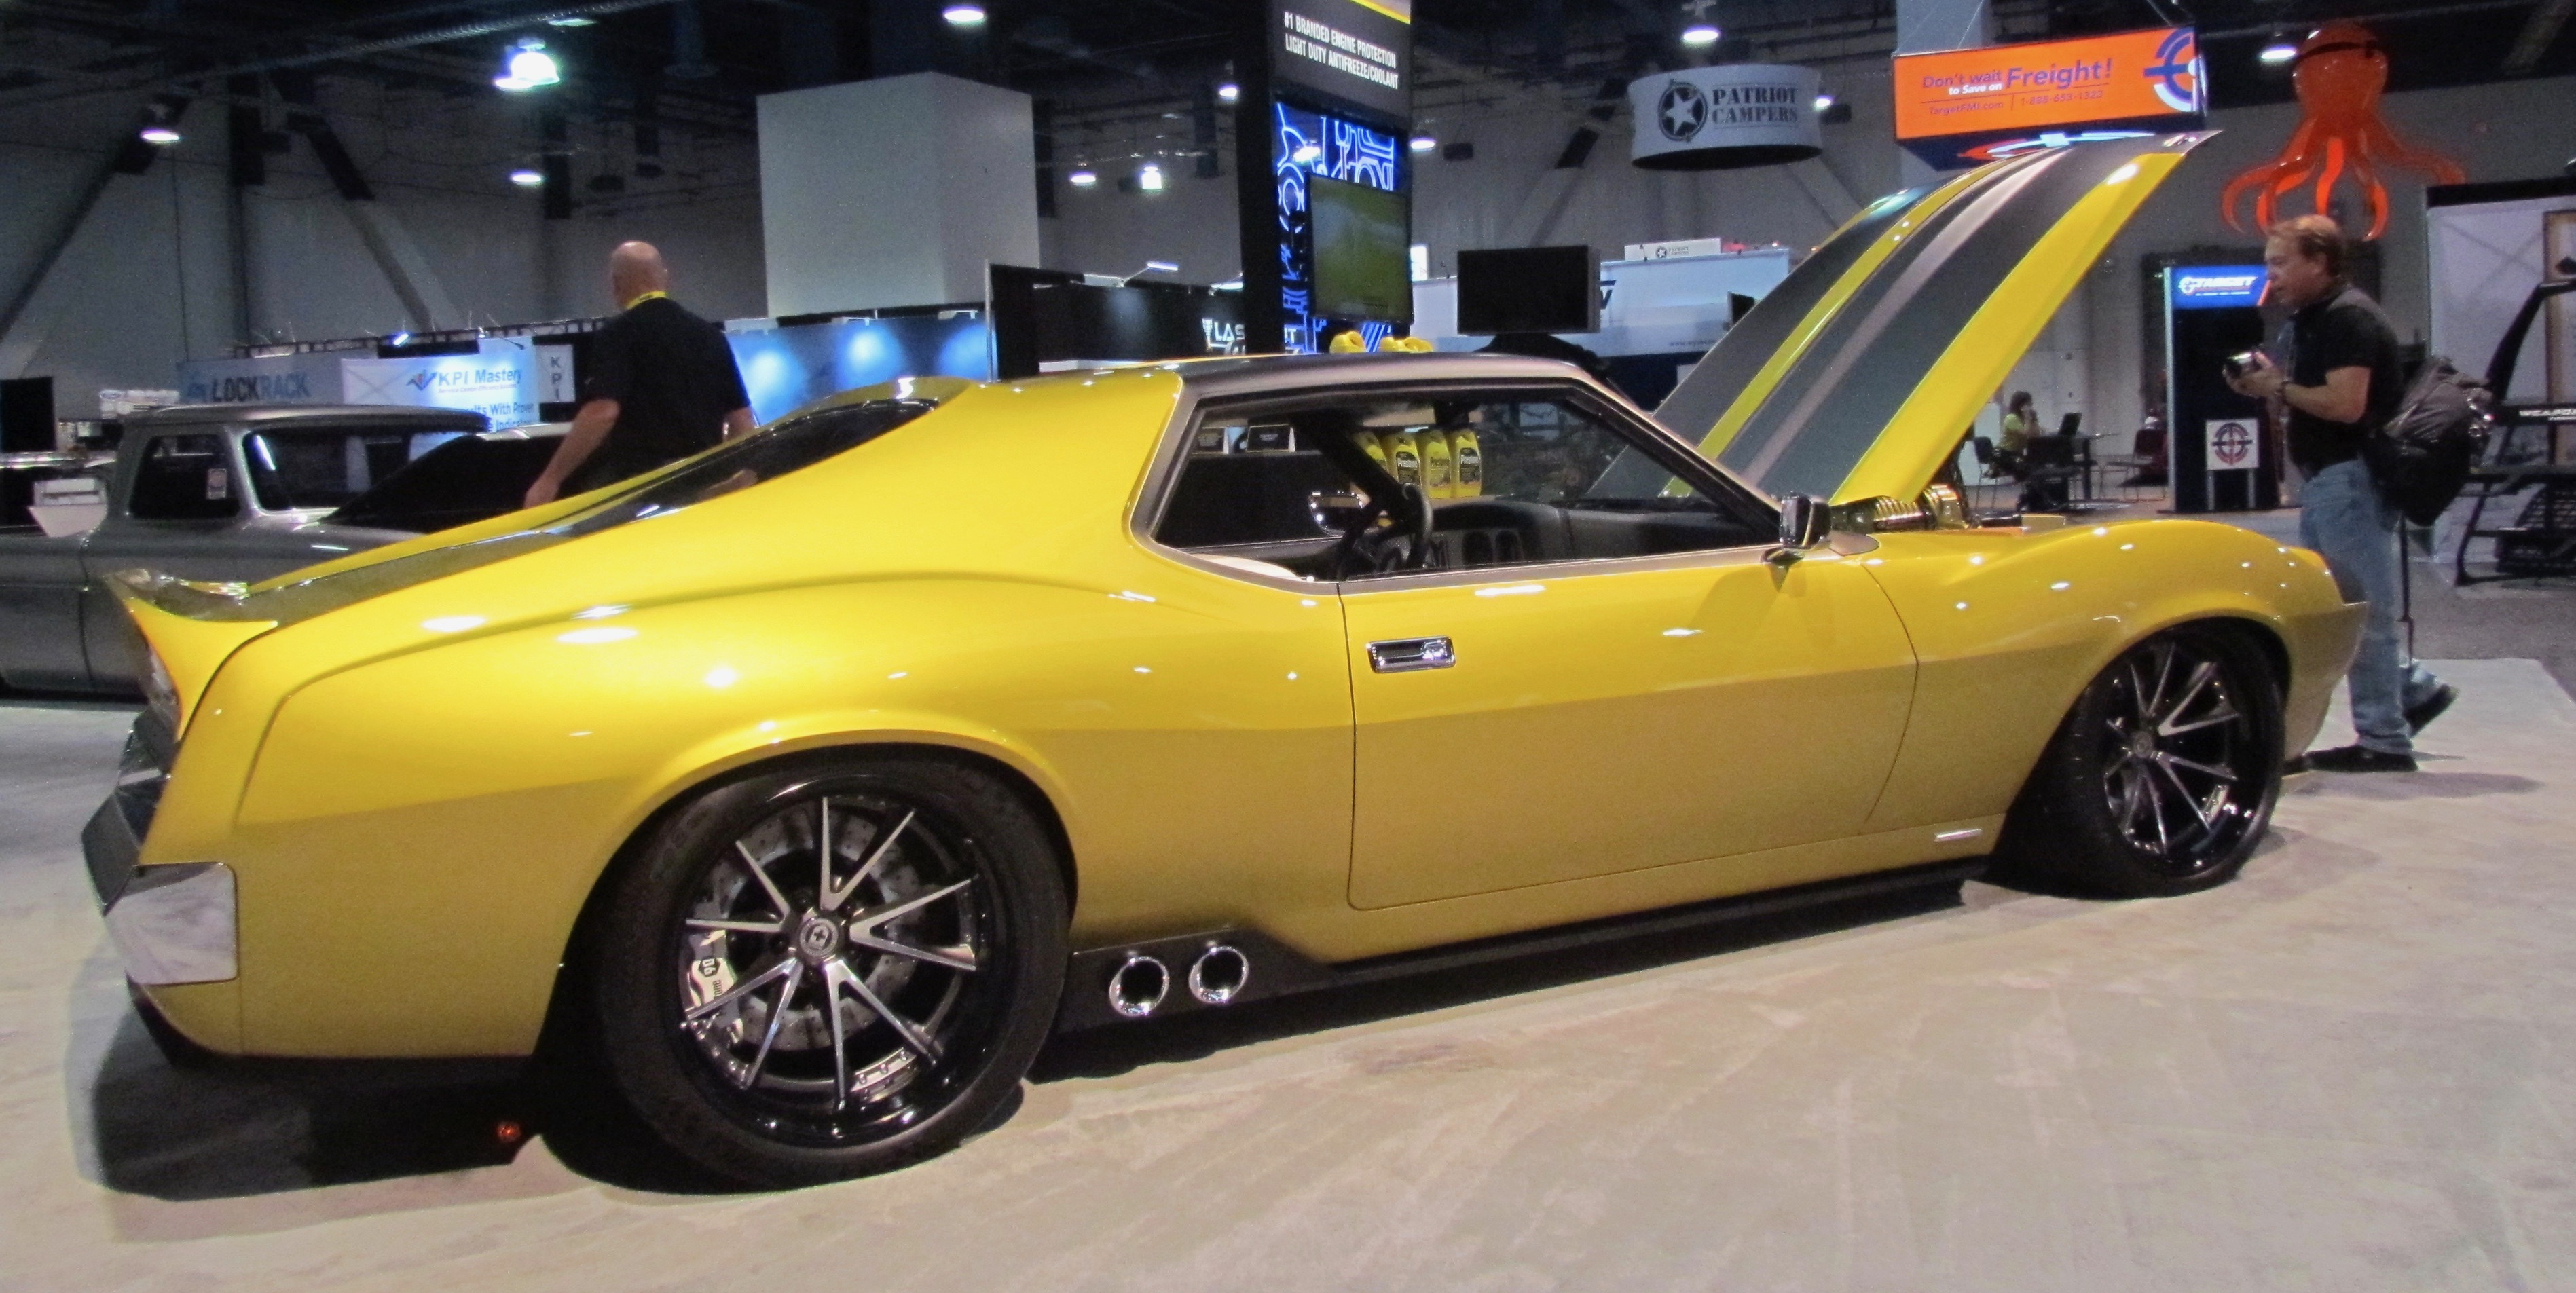 SEMA Seen: See the Ringbrothers cars at this show, not on a